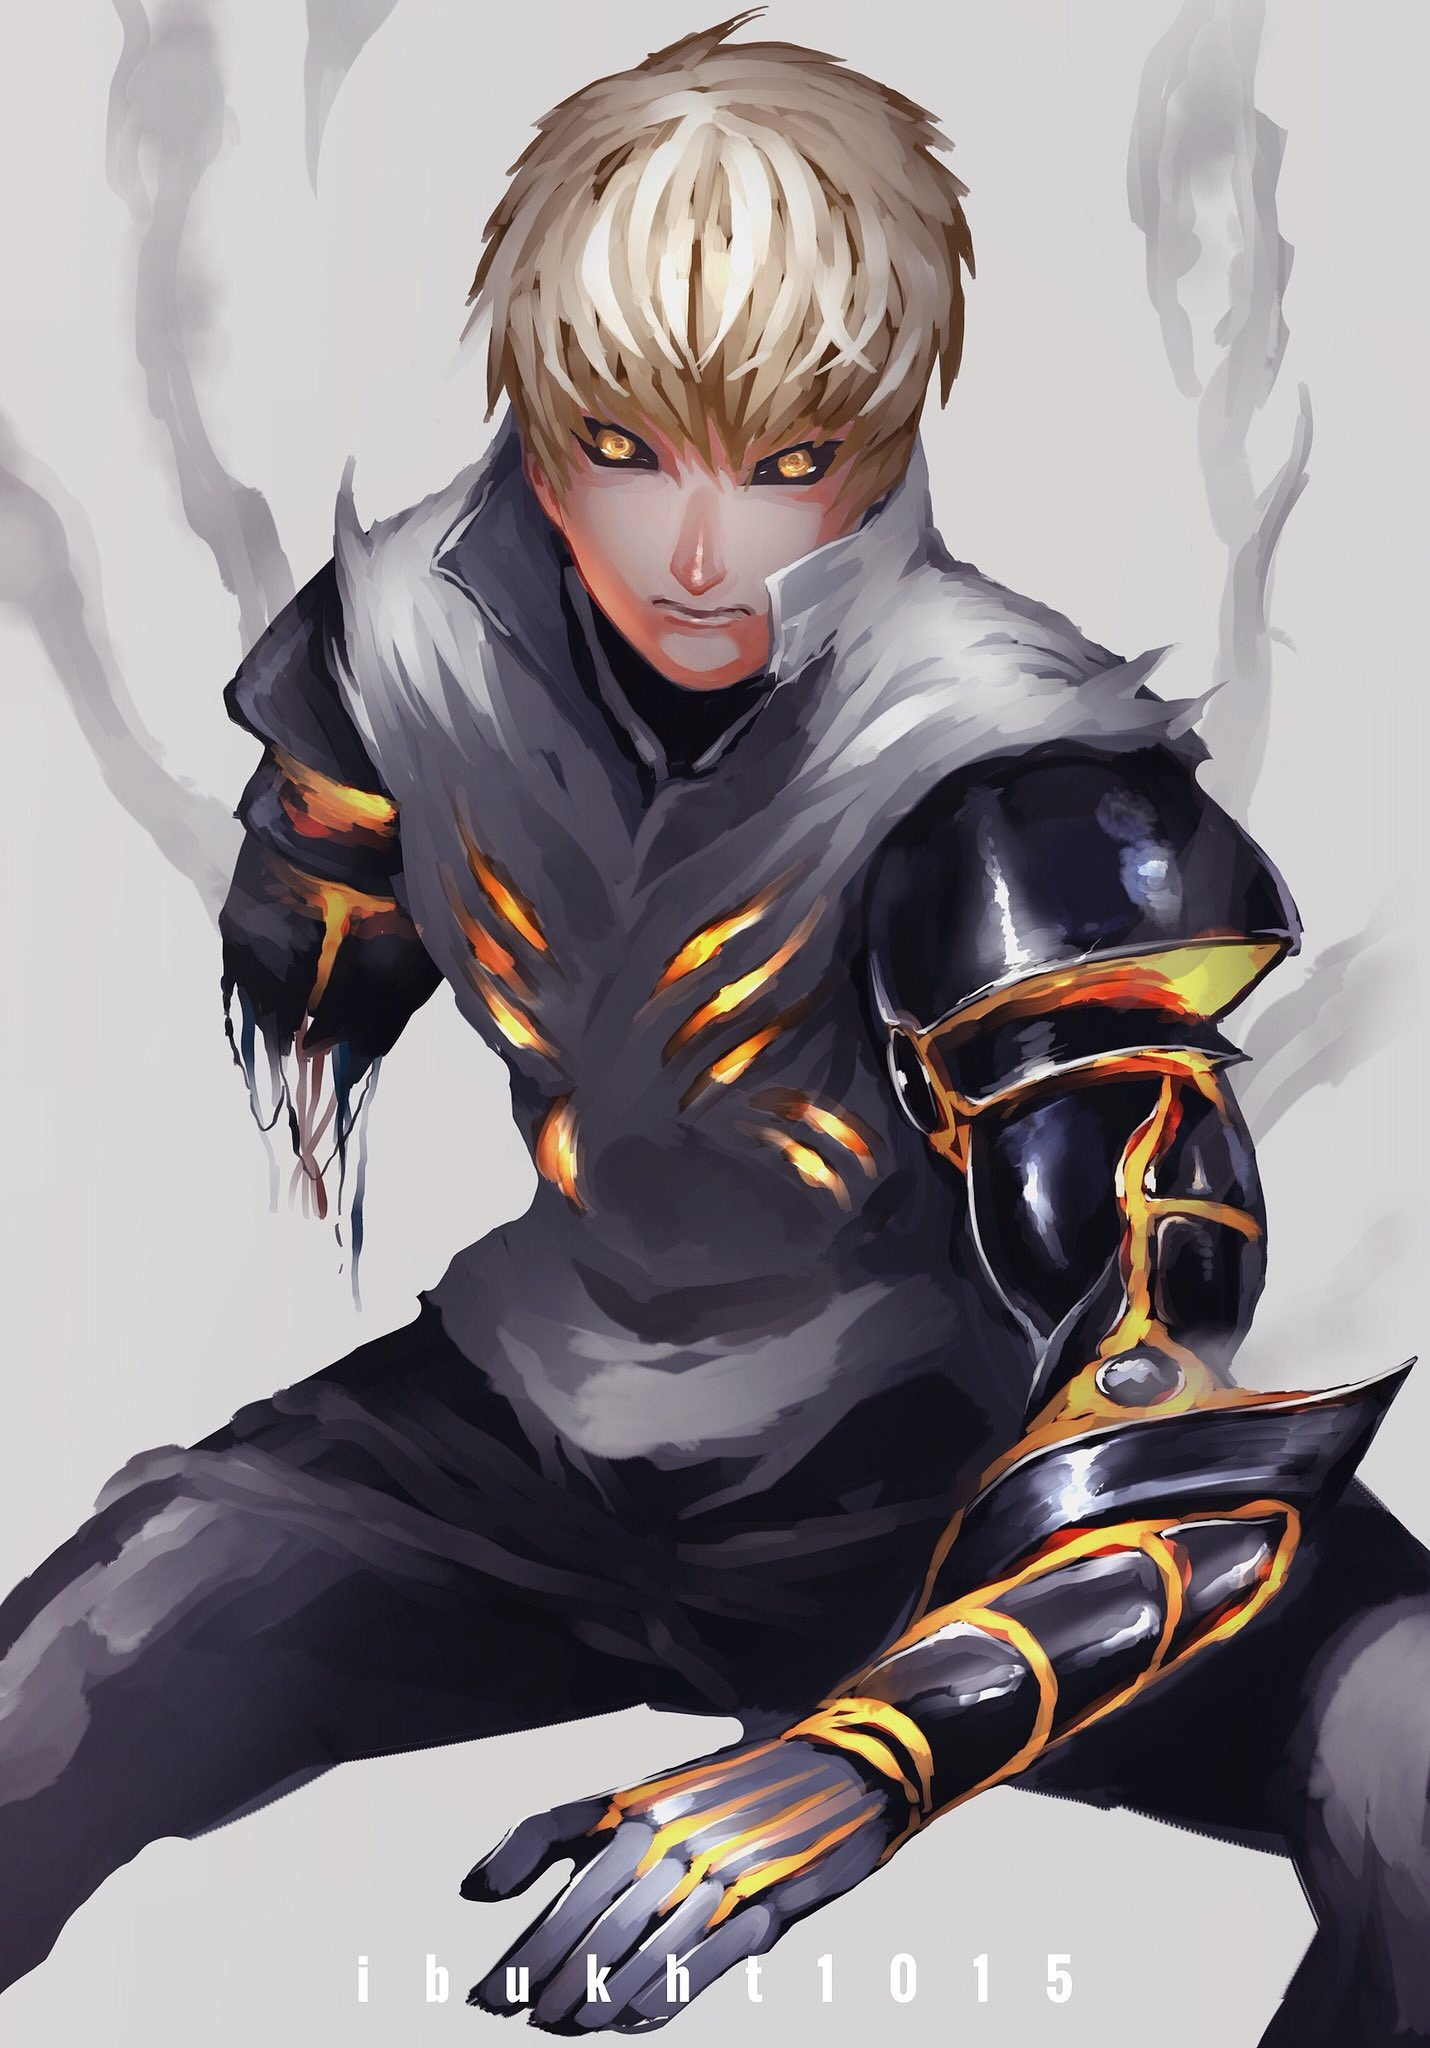 One Punch Man Genos Wallpaper Android 2231446 Hd Wallpaper